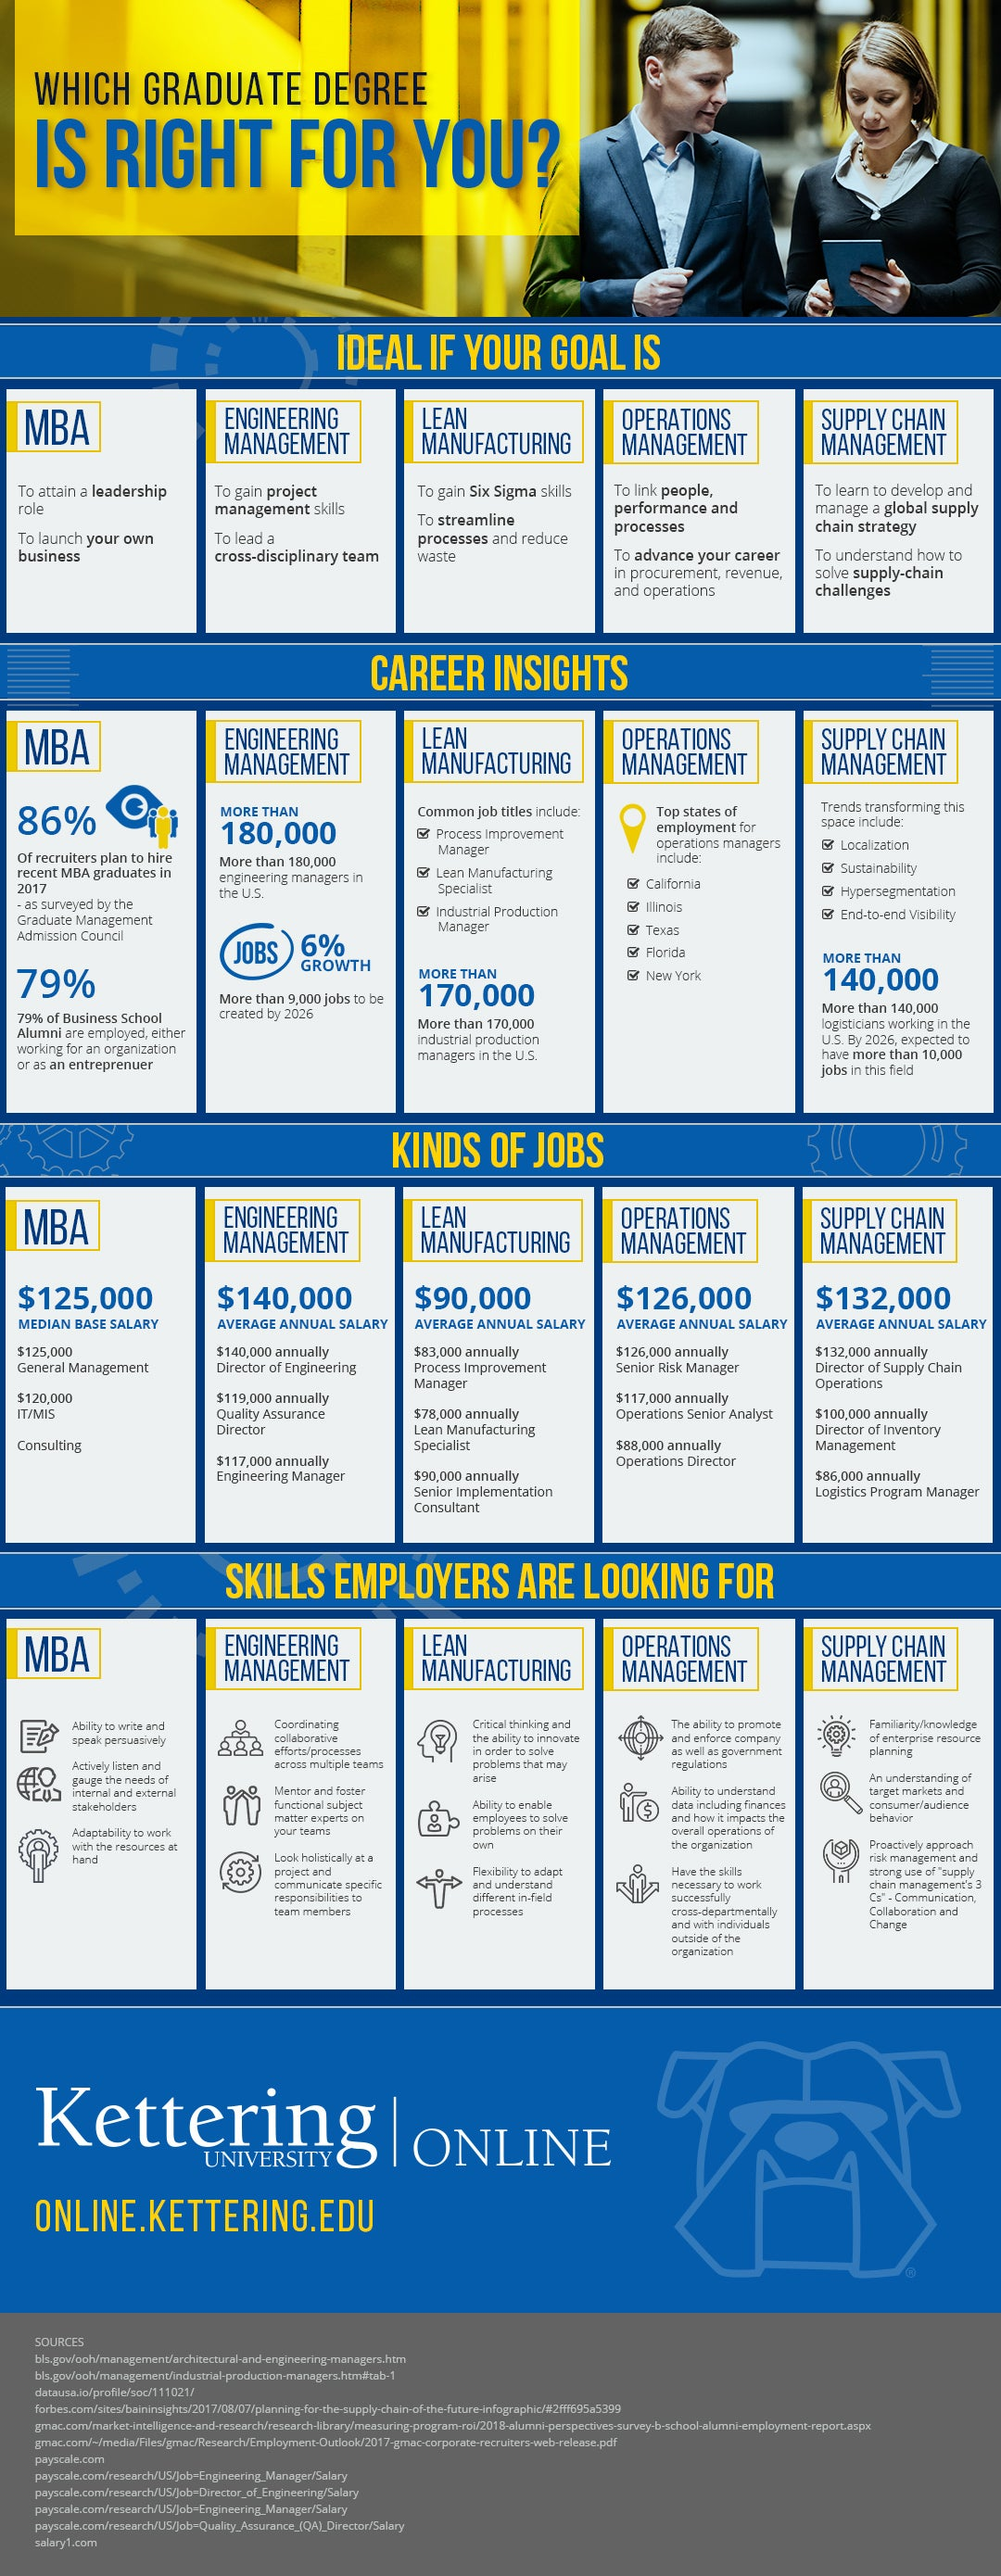 Online Engineering Degrees from Kettering University Infographic